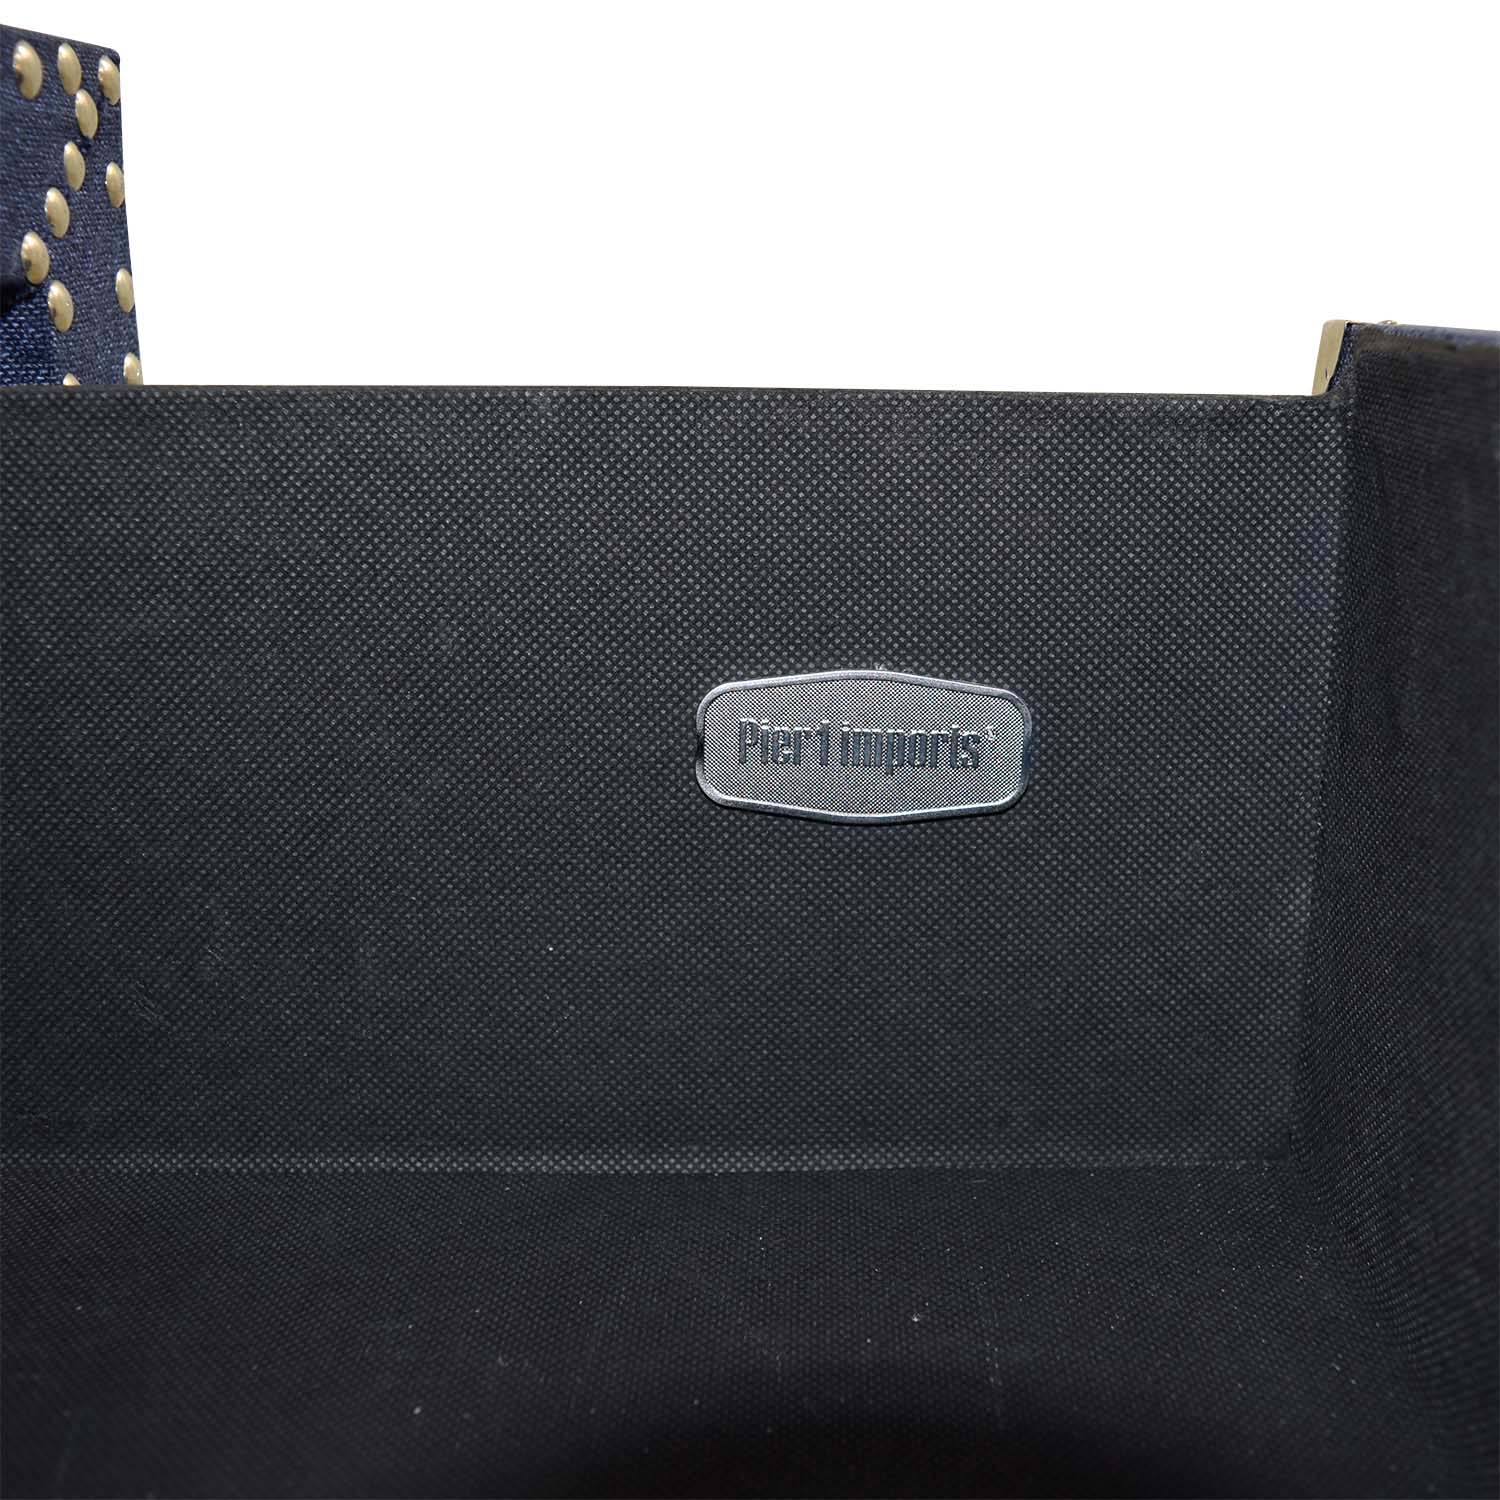 Pier 1 Imports Pier 1 Imports Denim Fabric Lexford Chest with Nailheads